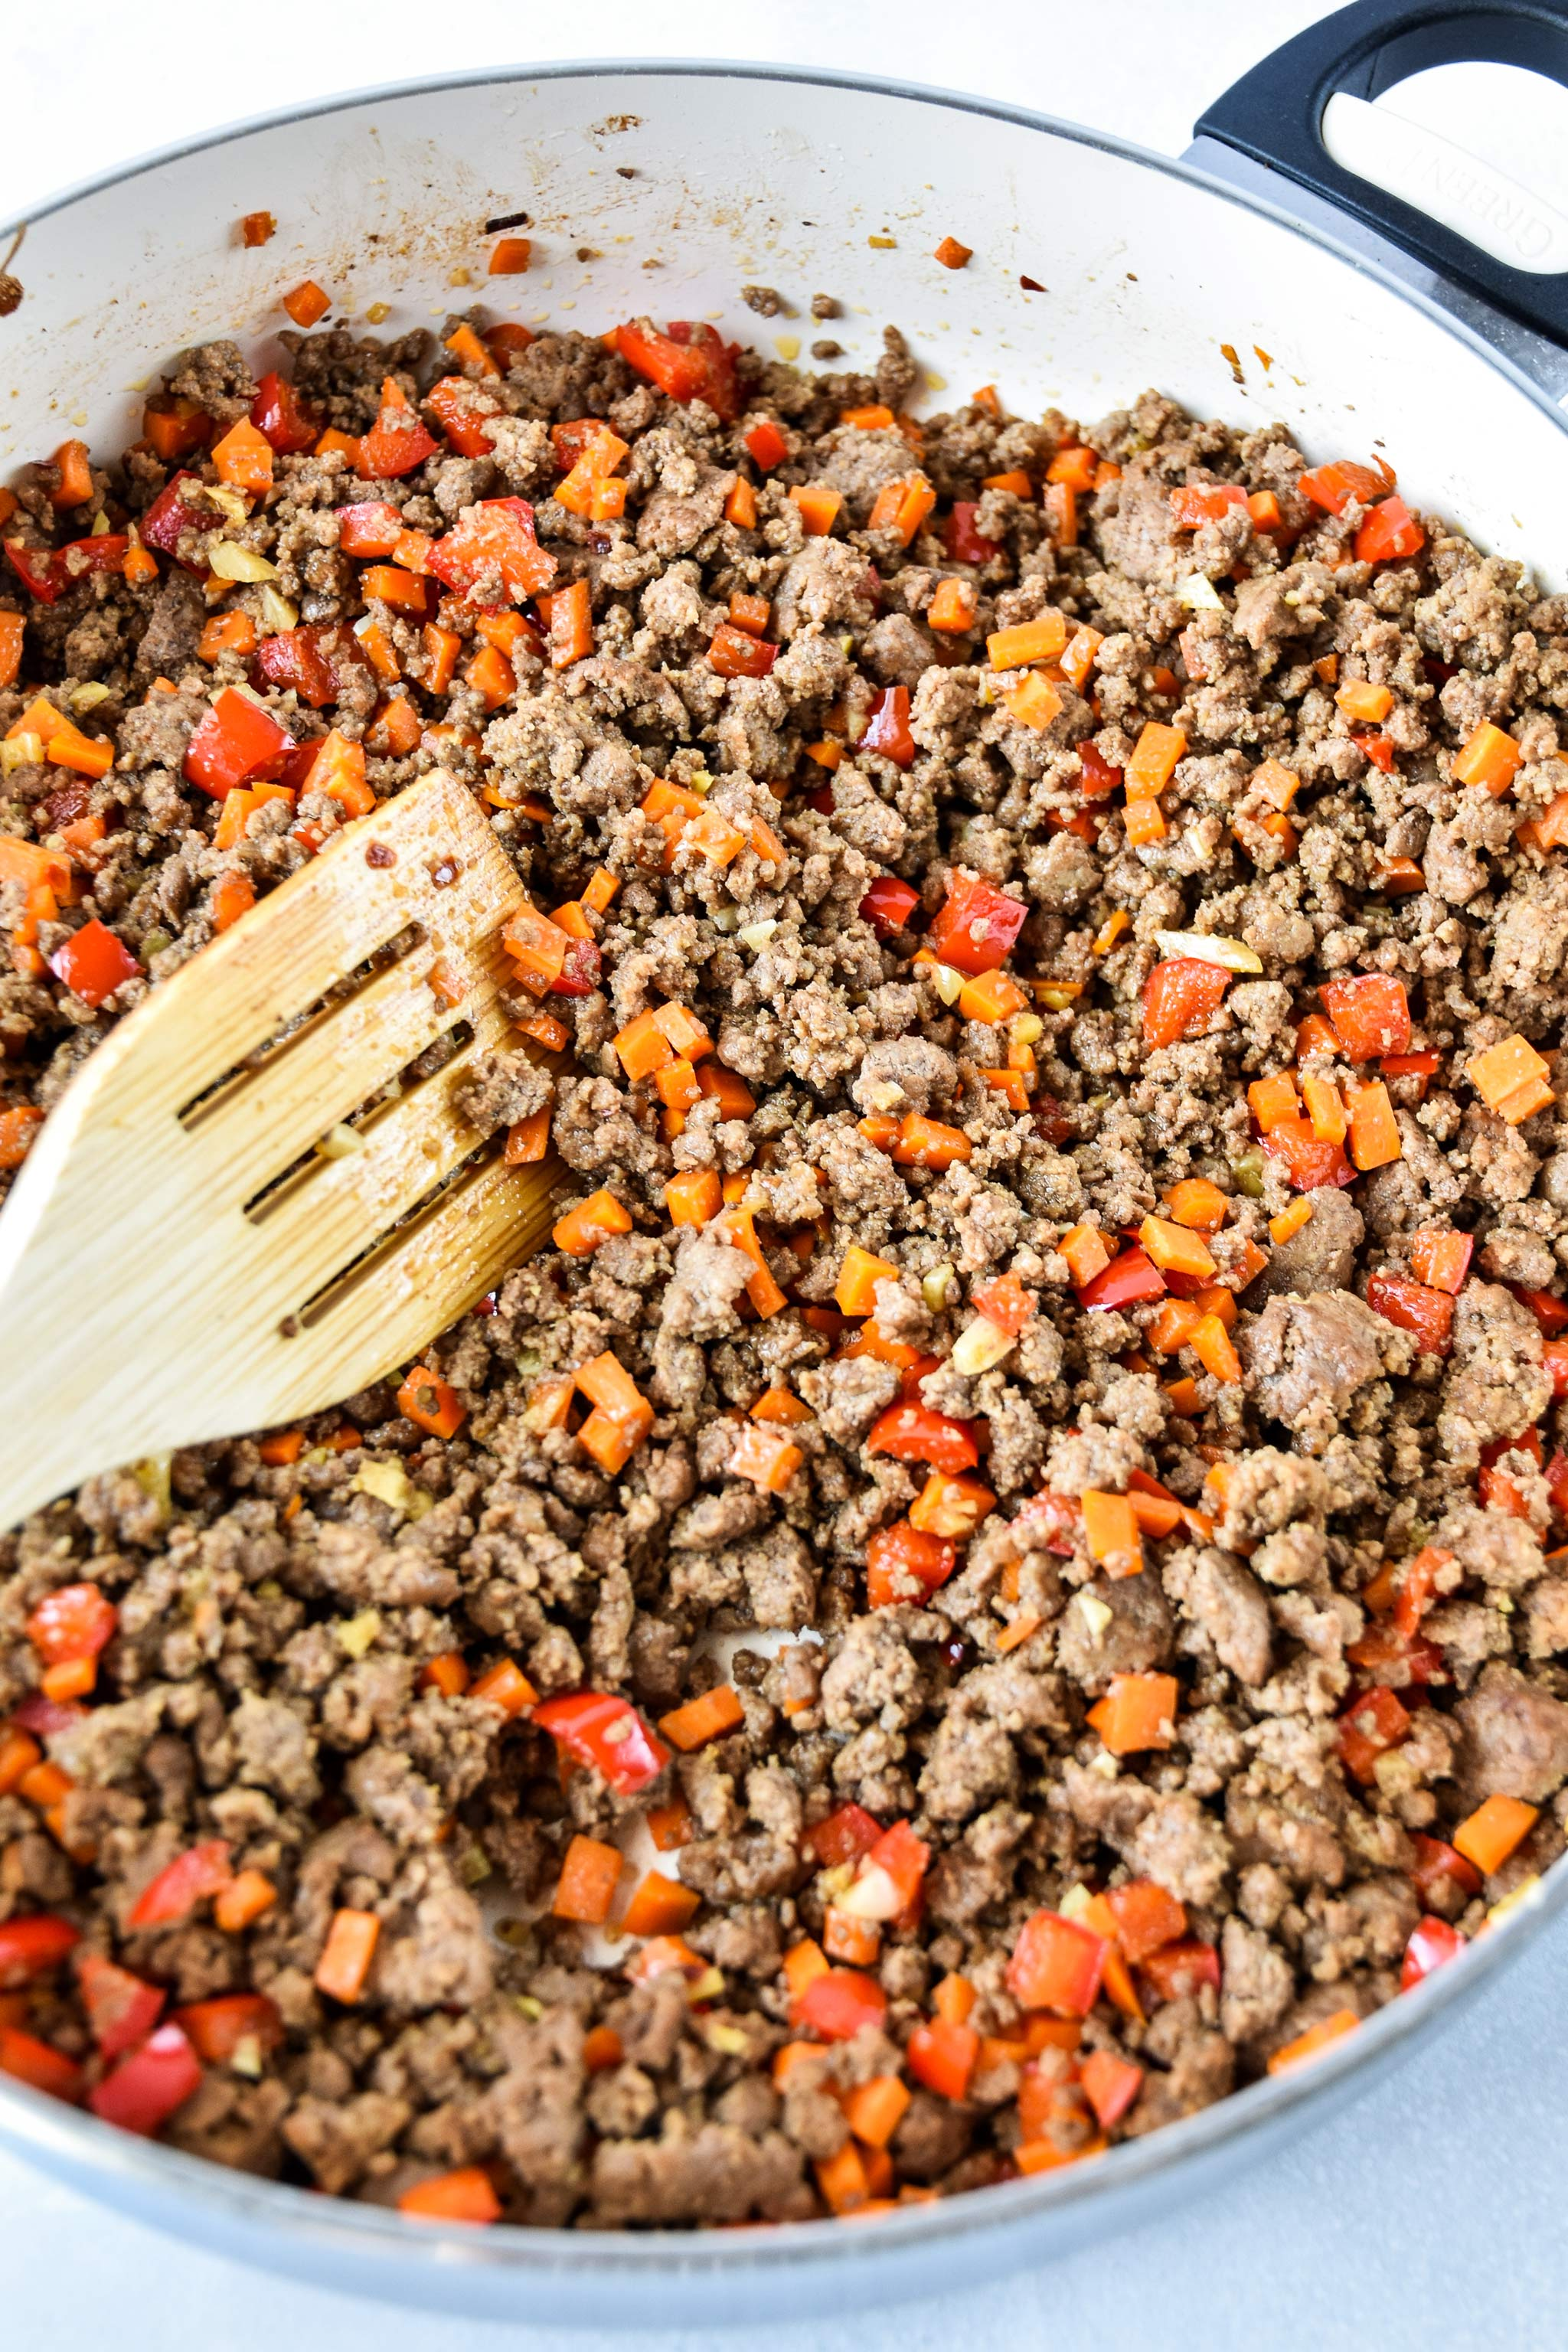 ginger ground beef bowls cooked in a skillet